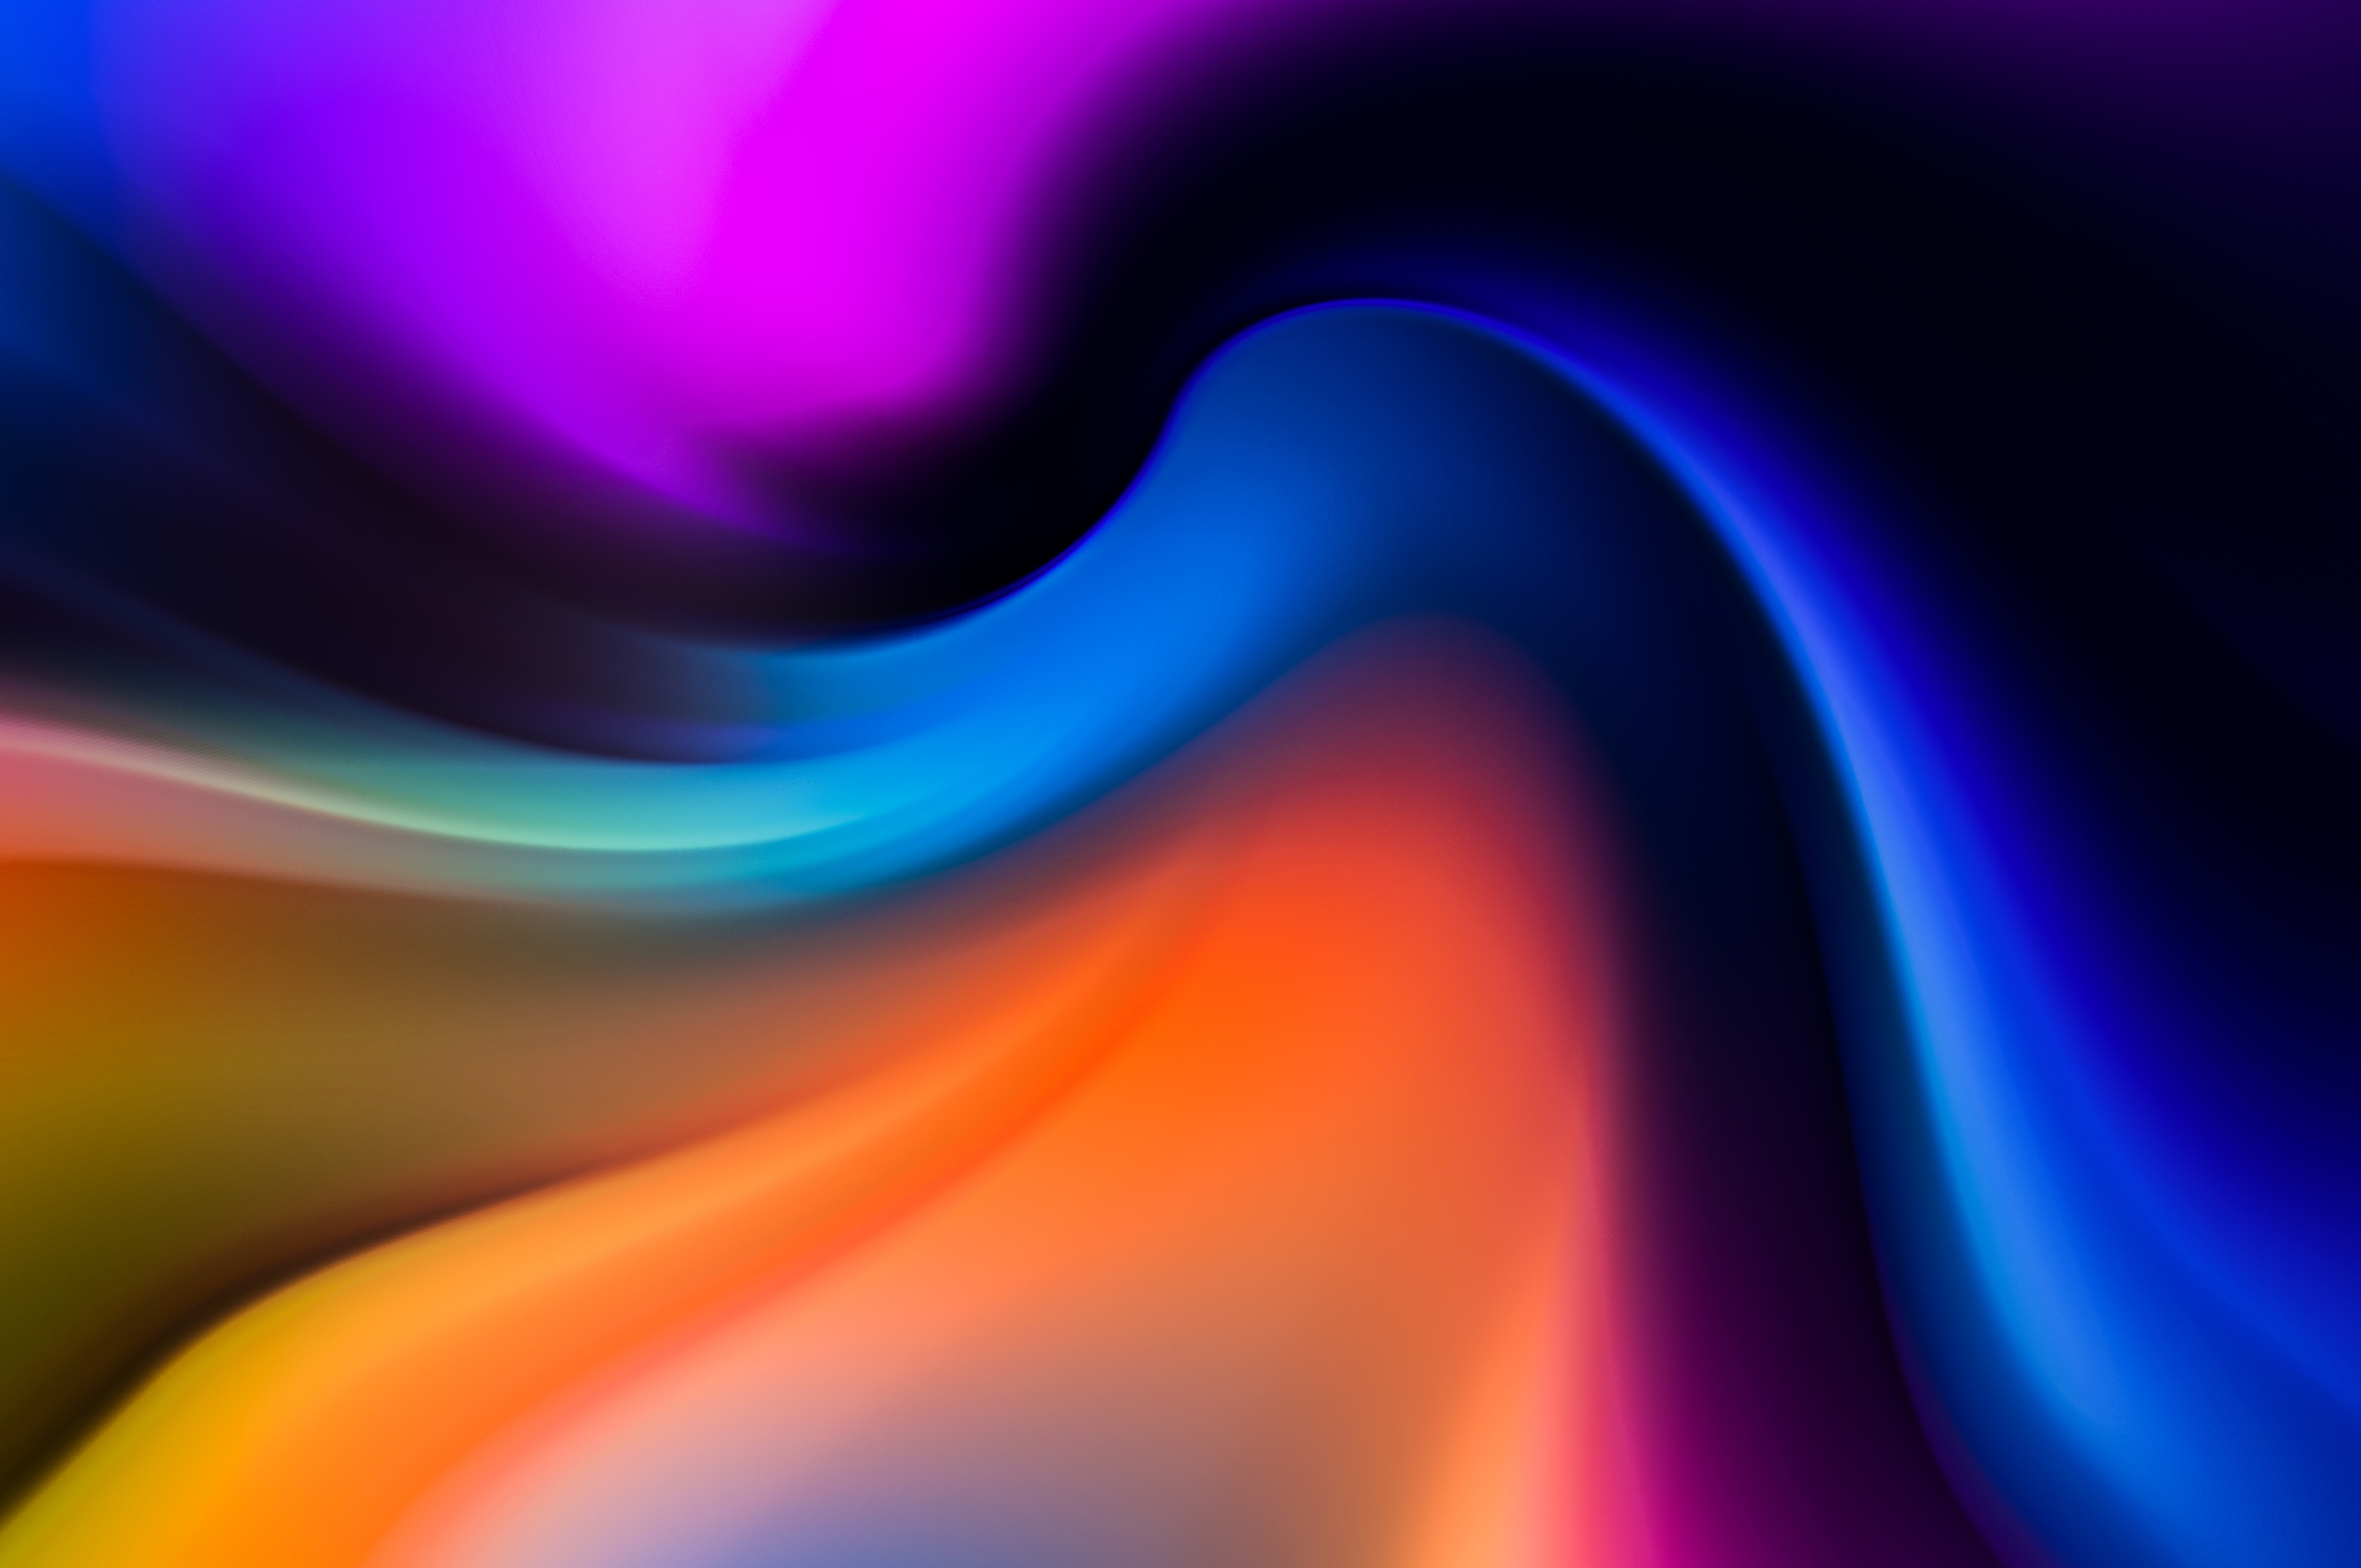 Color Noise 8K Wallpaper in 2560x1700 Resolution